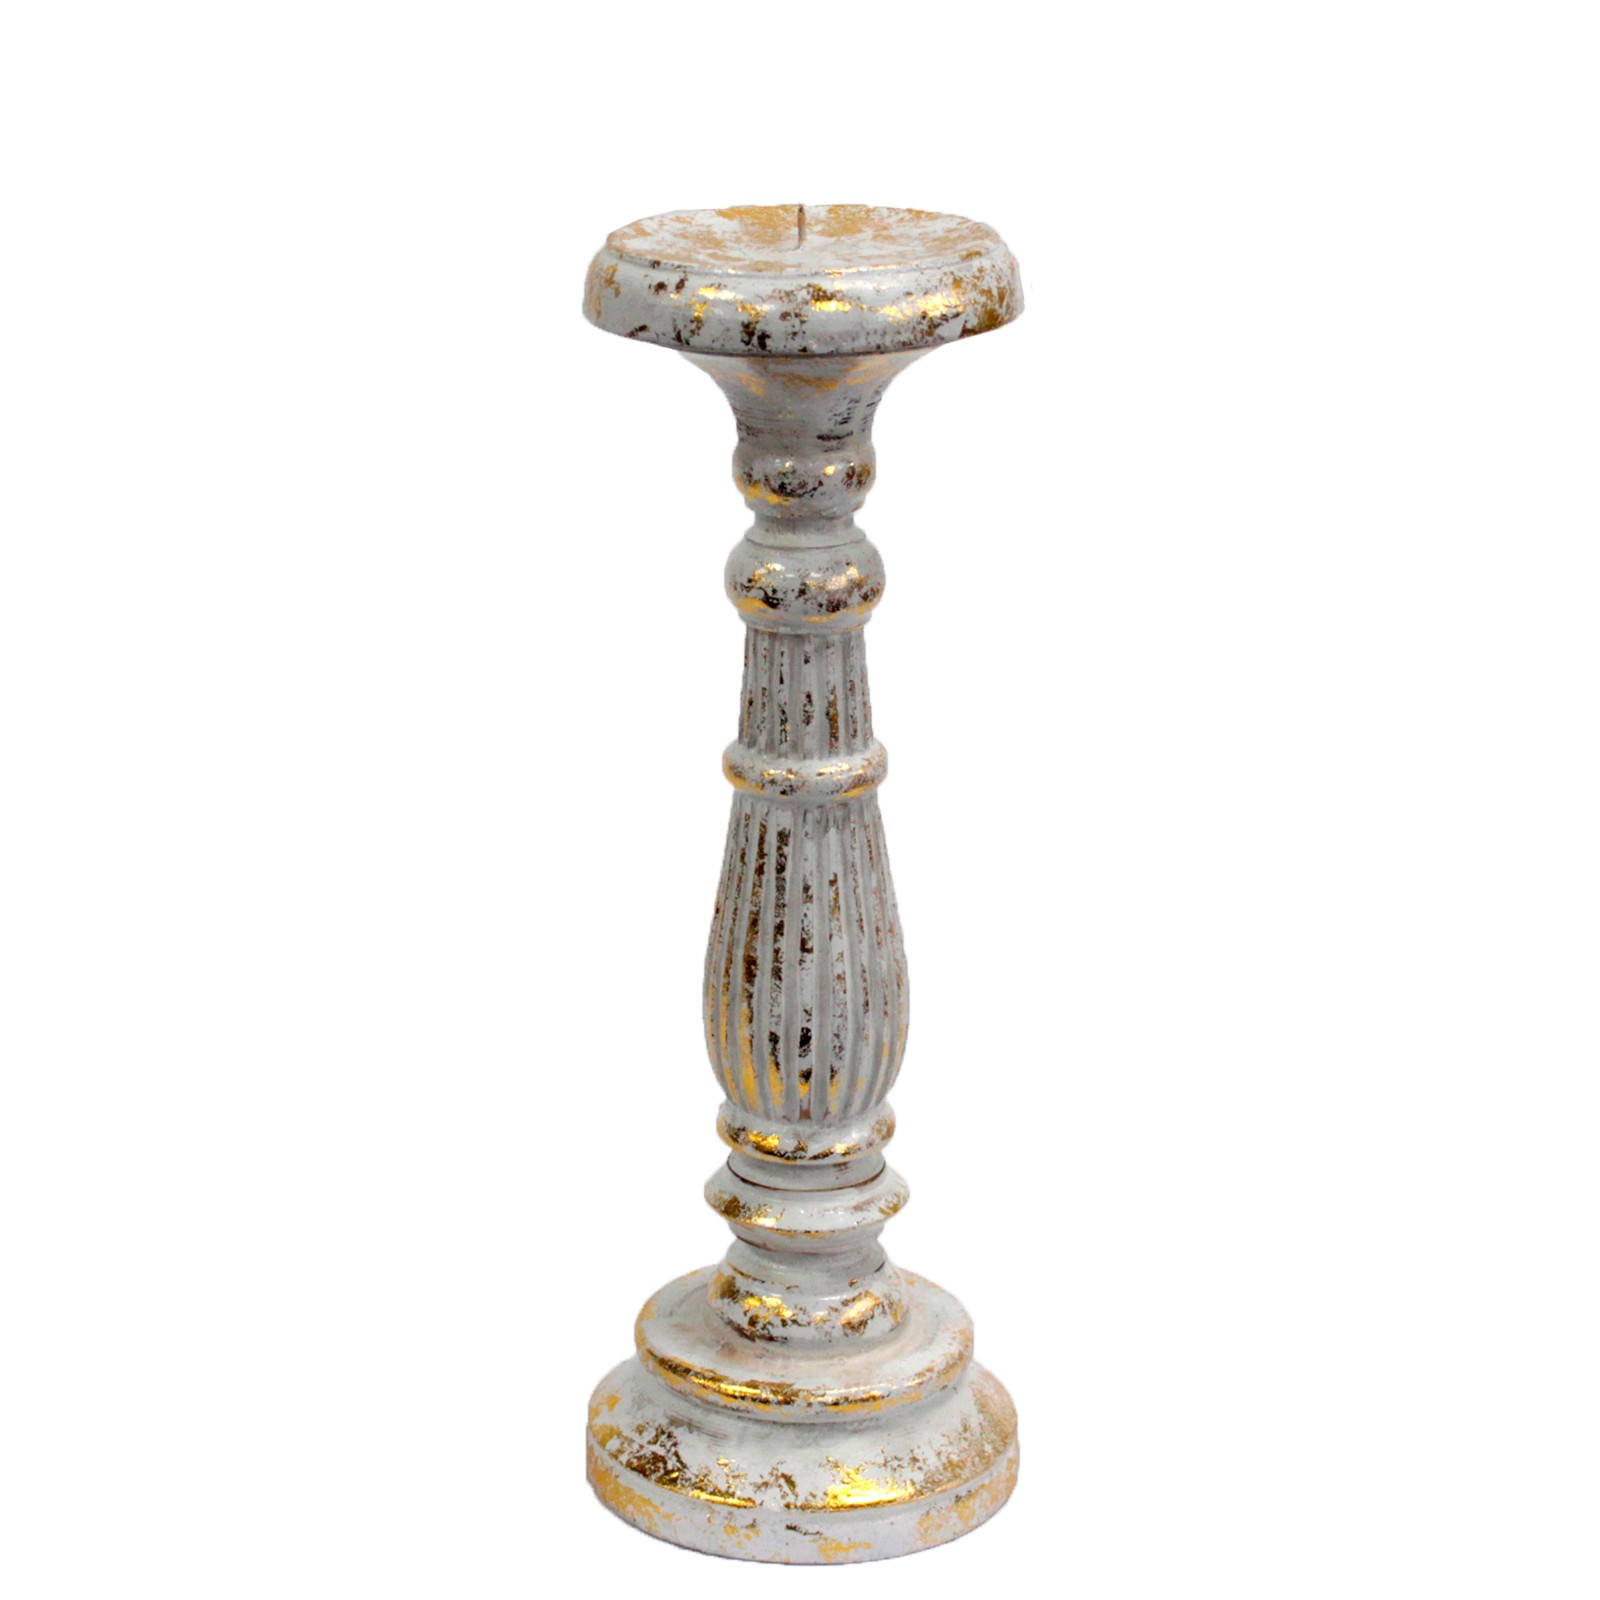 Medium Candle Stand - White & Gold